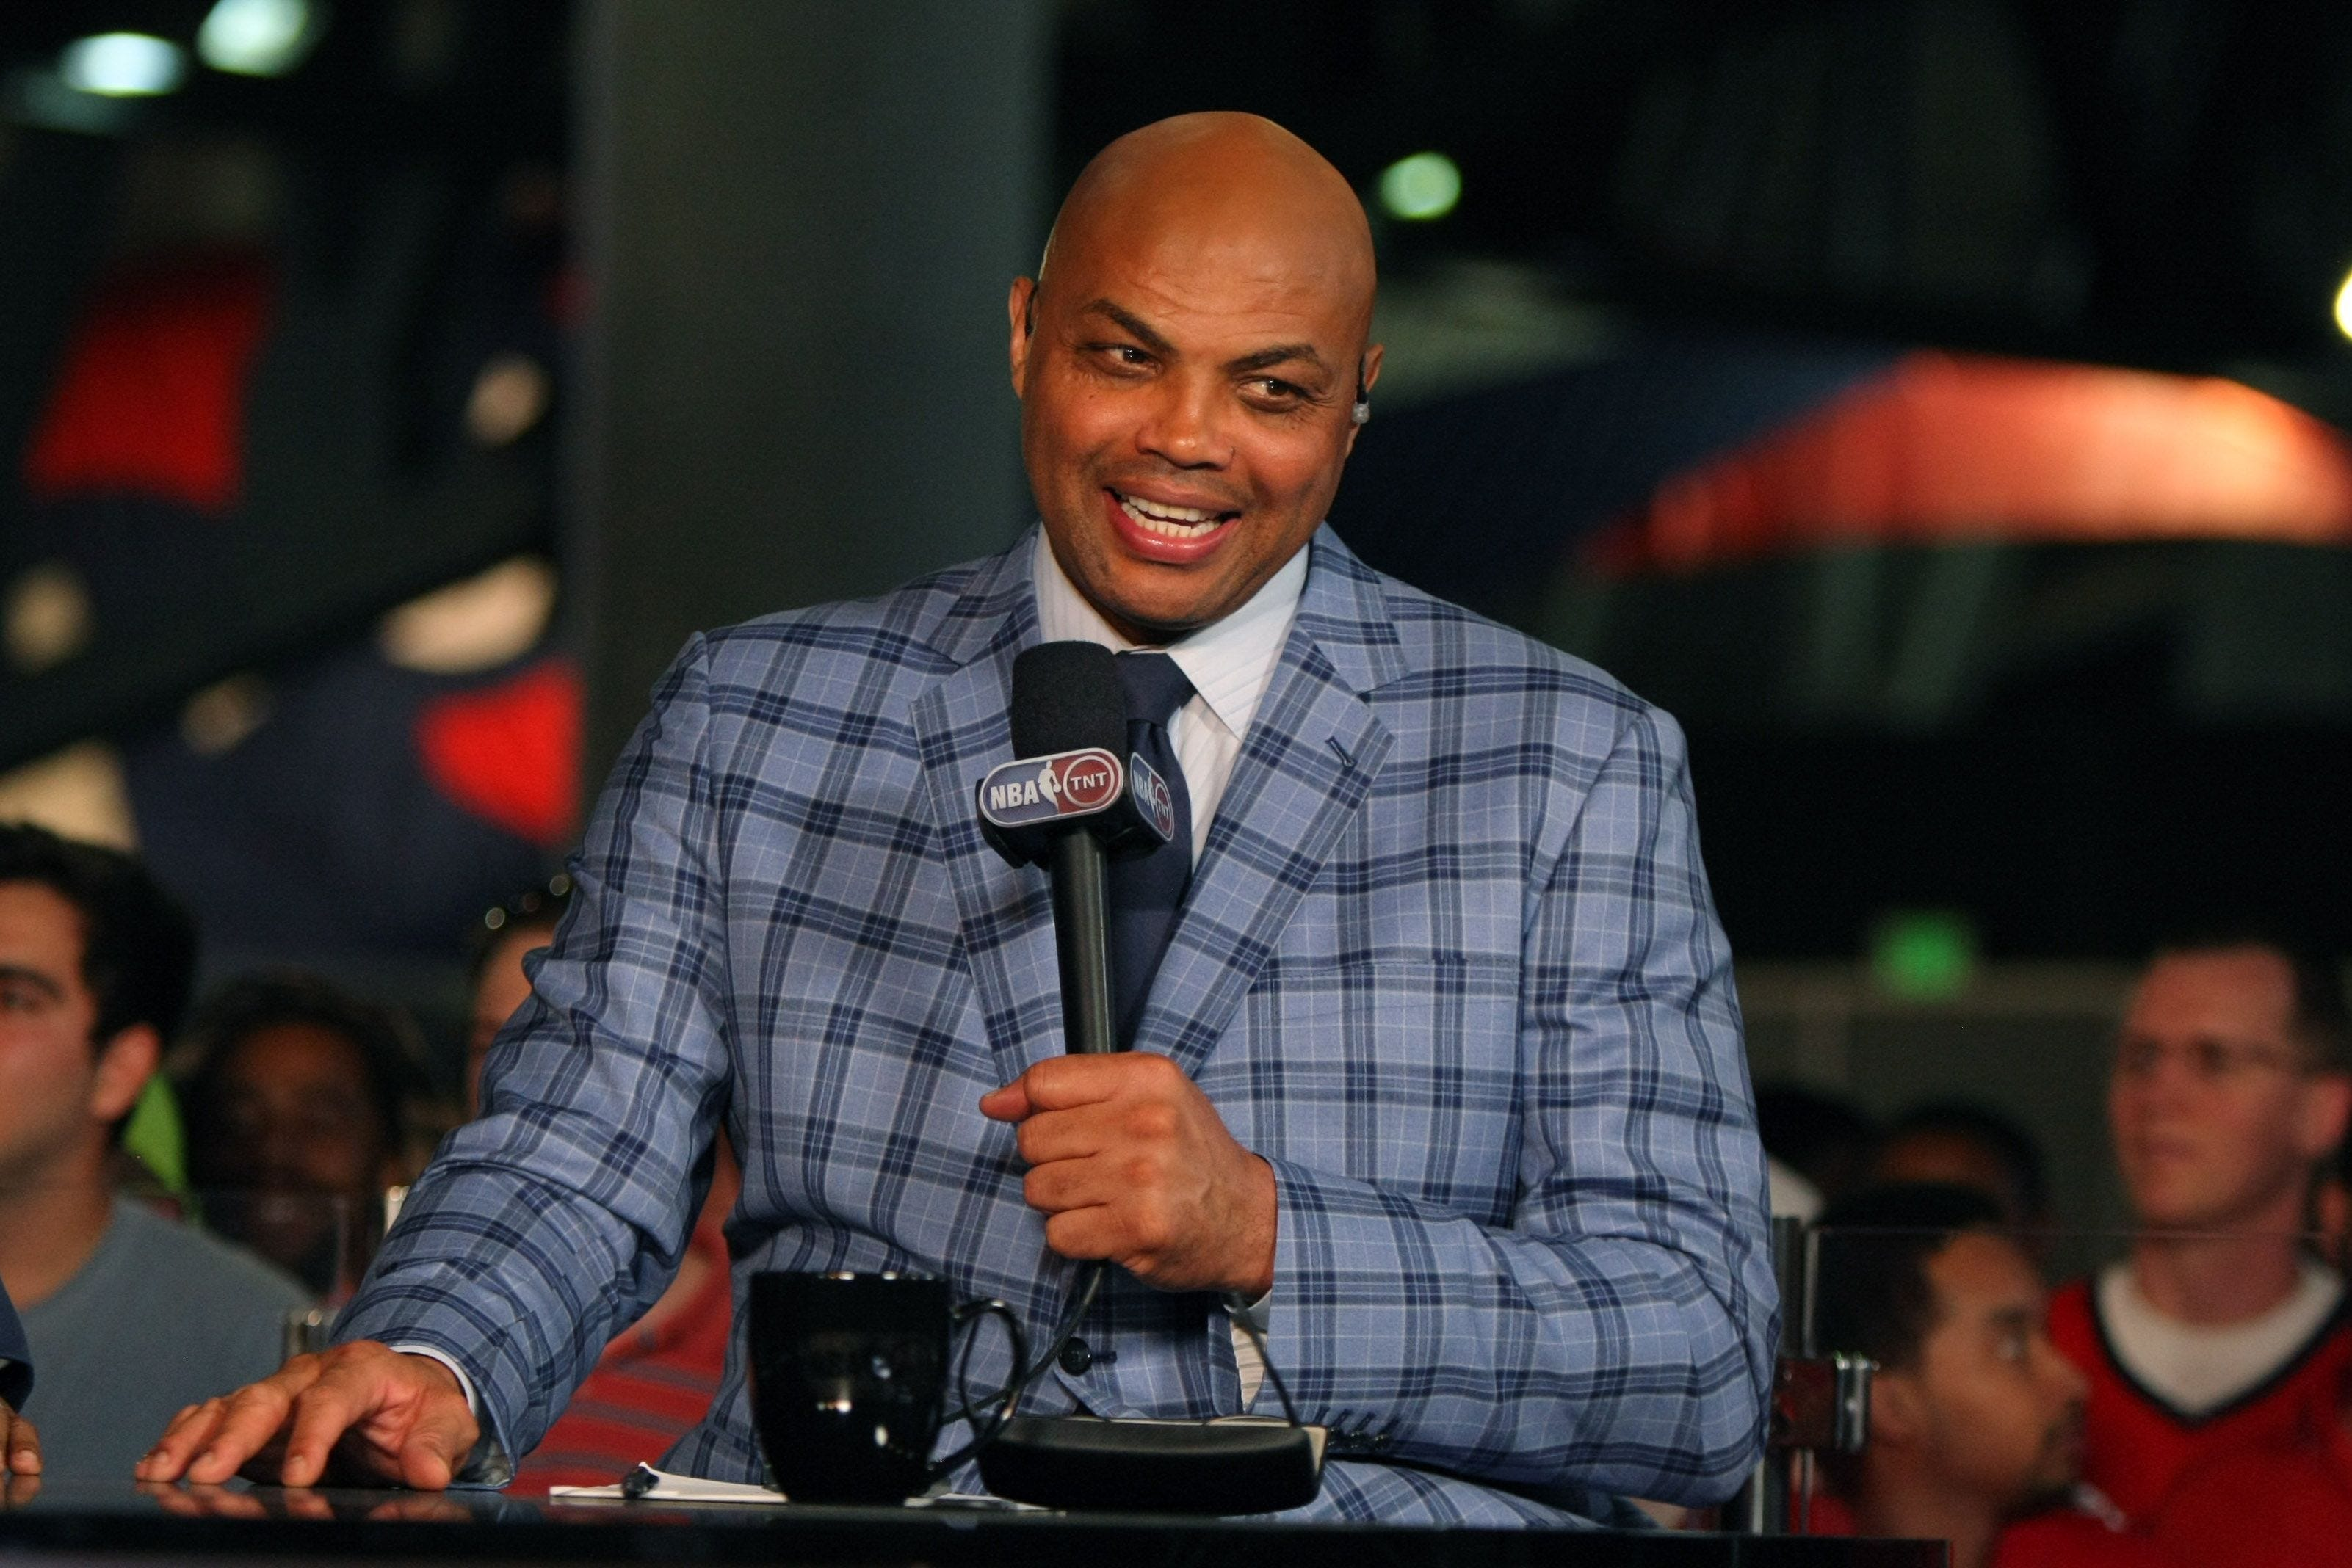 Charles Barkley is serious when he says he loves the NHL playoffs